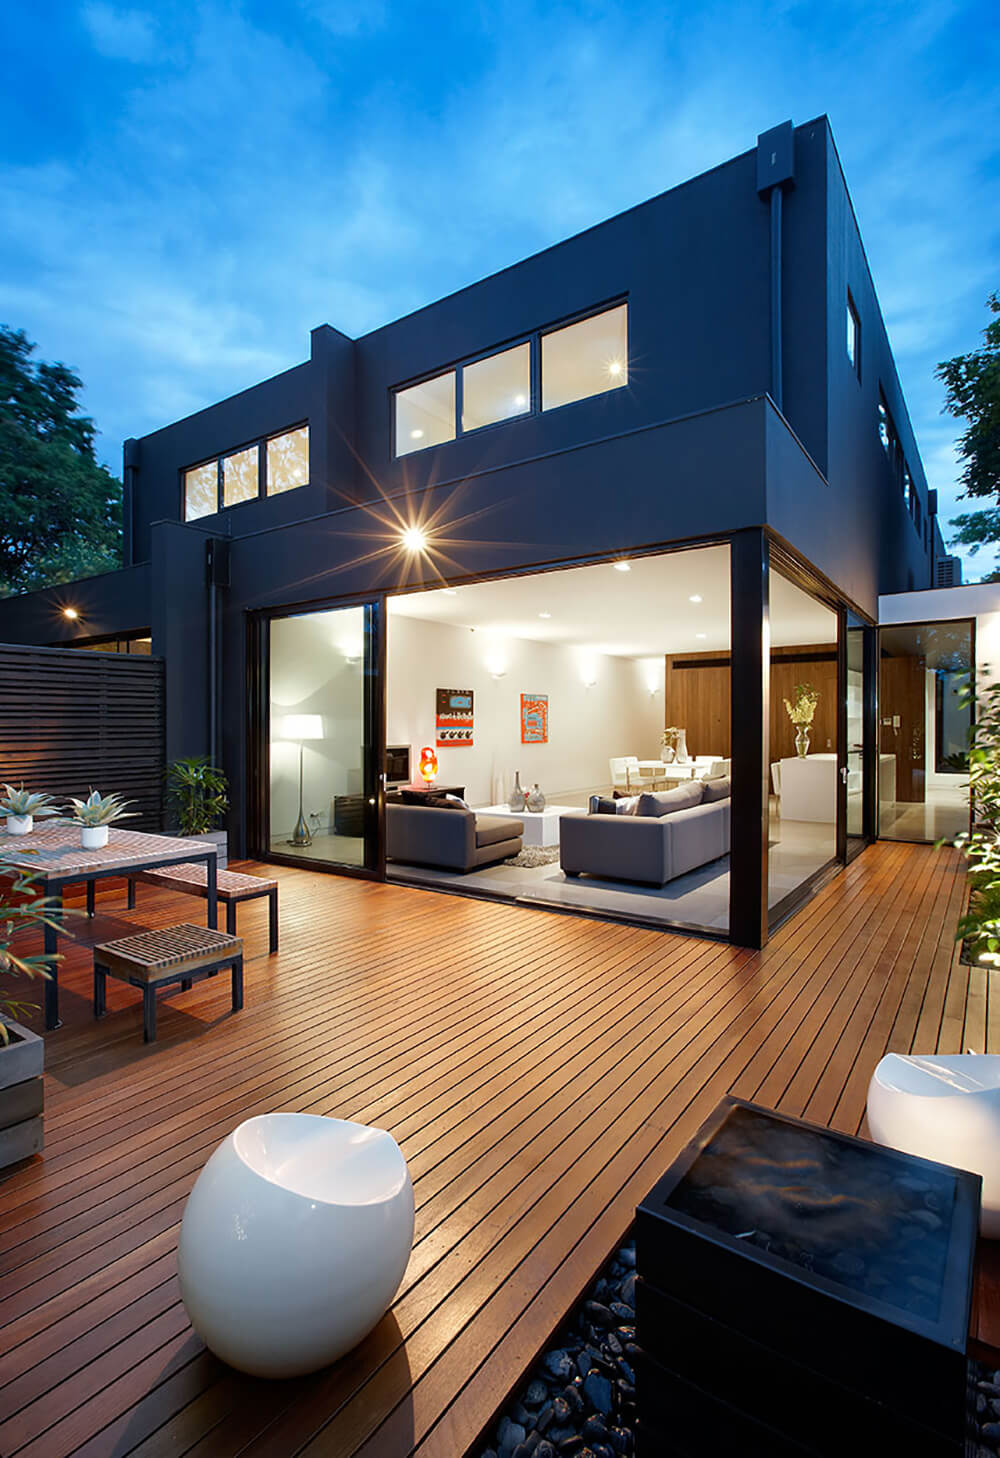 This deck features classy seats and a dining table set along with some plants on the side.